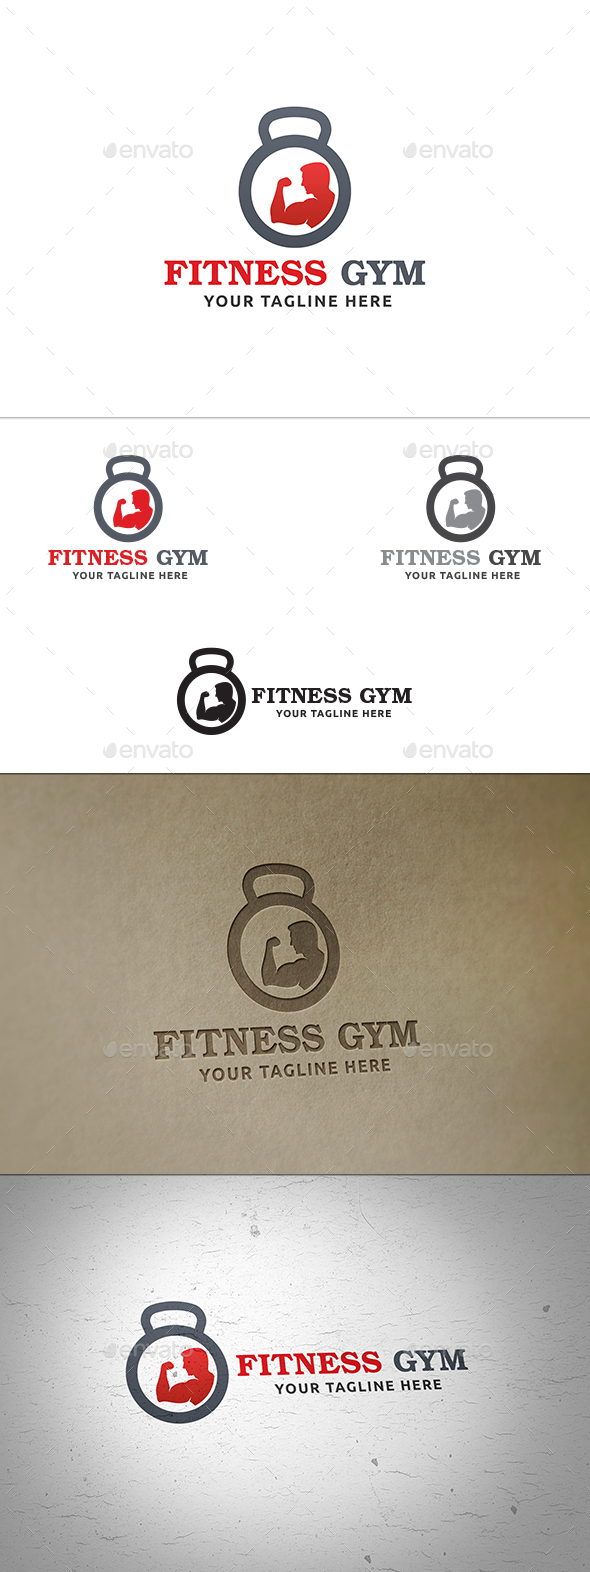 Fitness Gym Logo - Objects Logo Templates